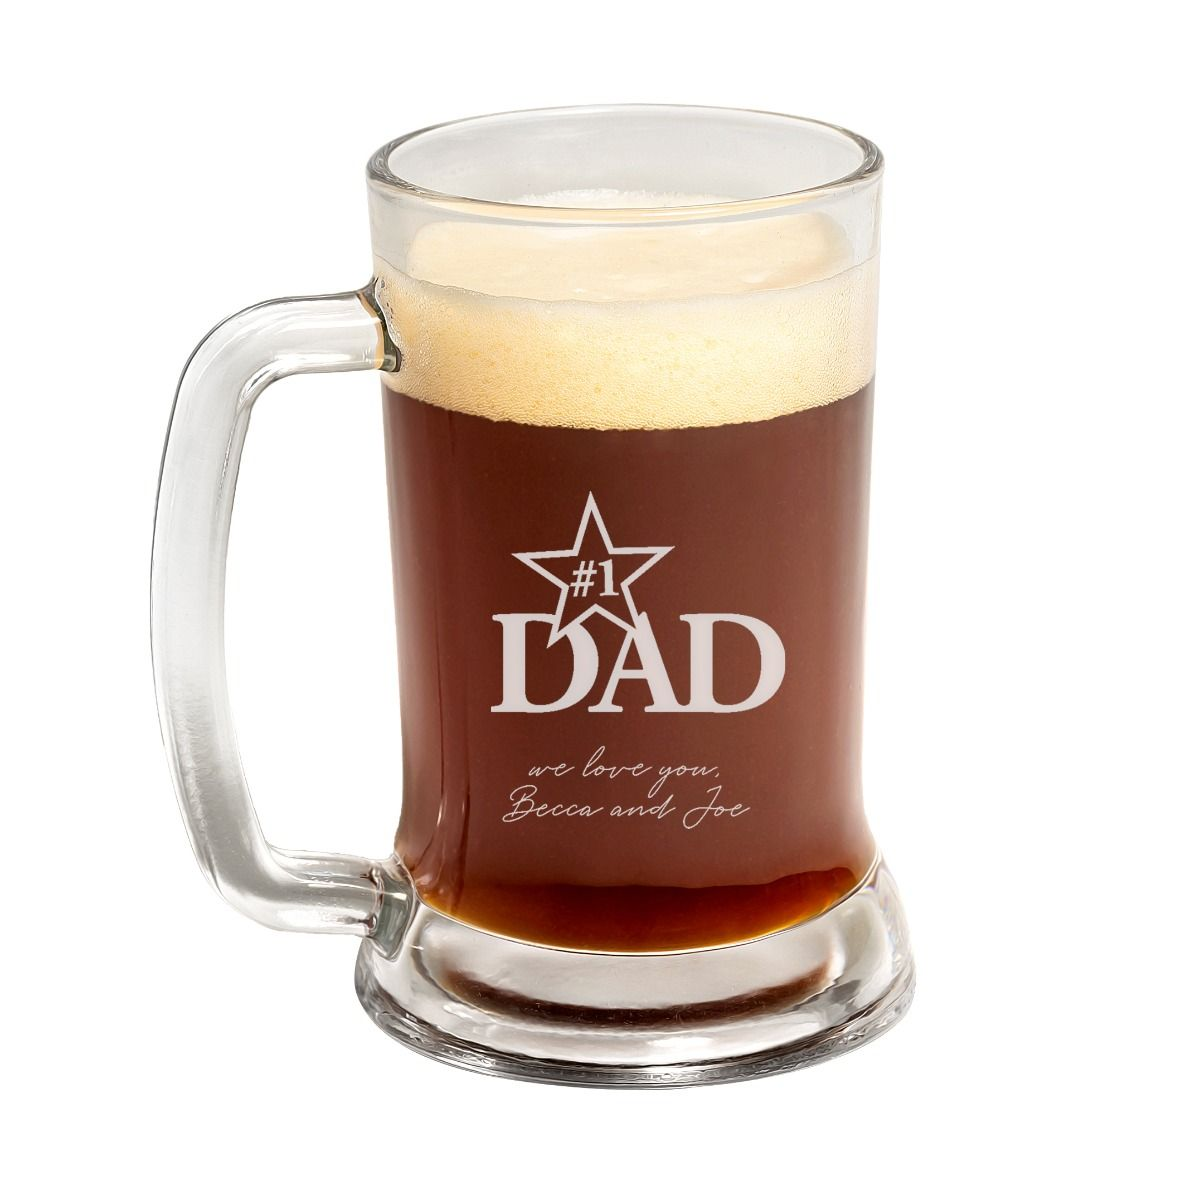 #1 Dad Father's Day Beer Mug